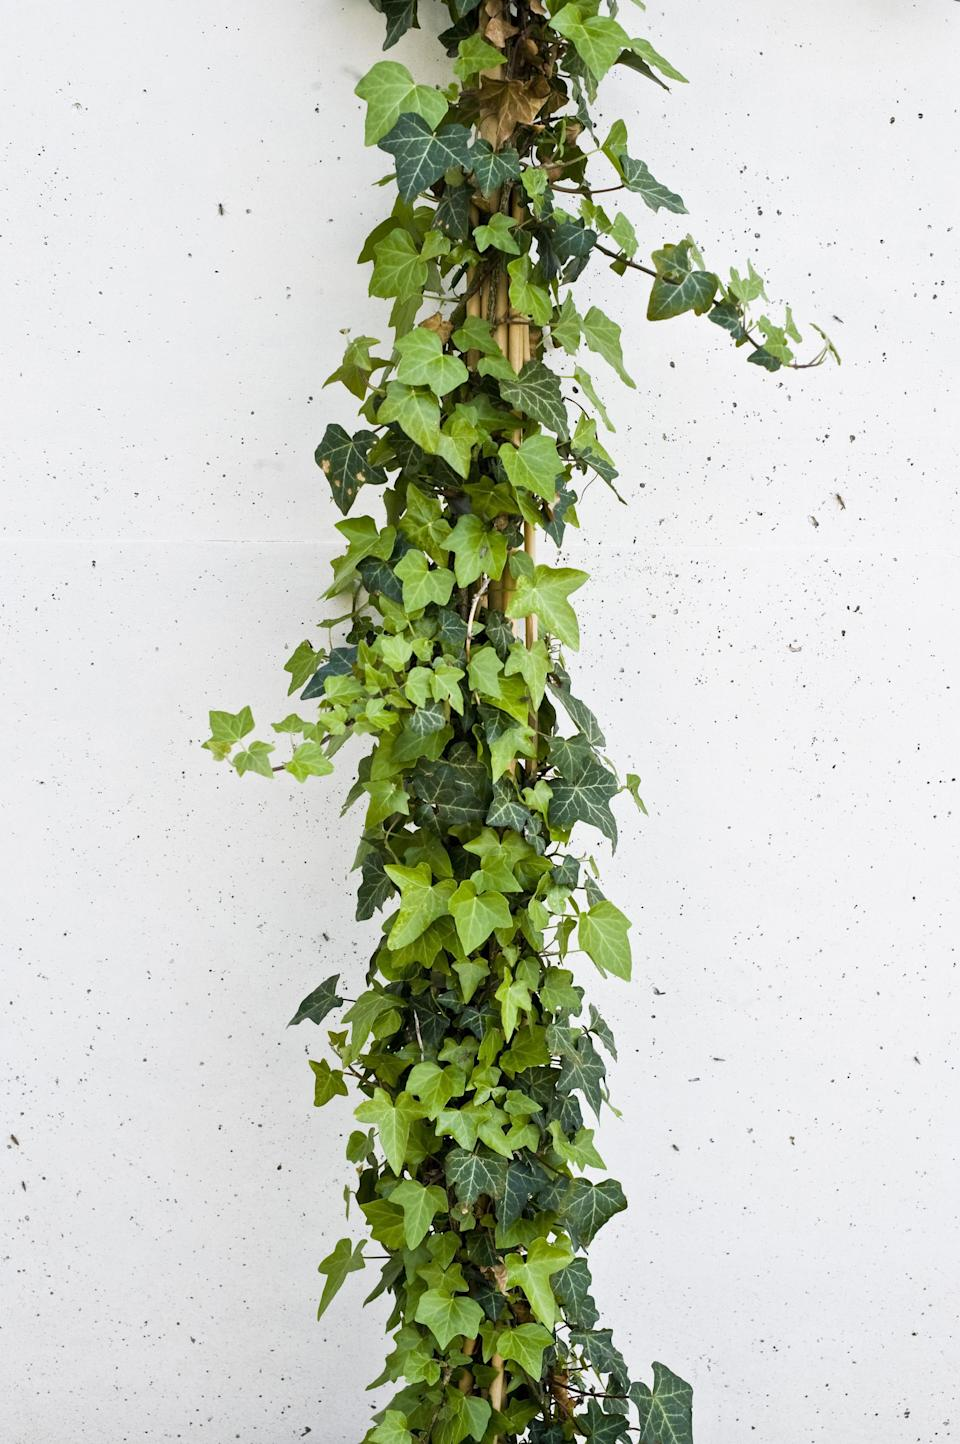 <p>Trailing ivy can remove 78% of airborne mould in as little as 12 hours, according to researchers at the American College of Allergy, Asthma and Immunology.<br><i>[Photo: Getty]</i> </p>